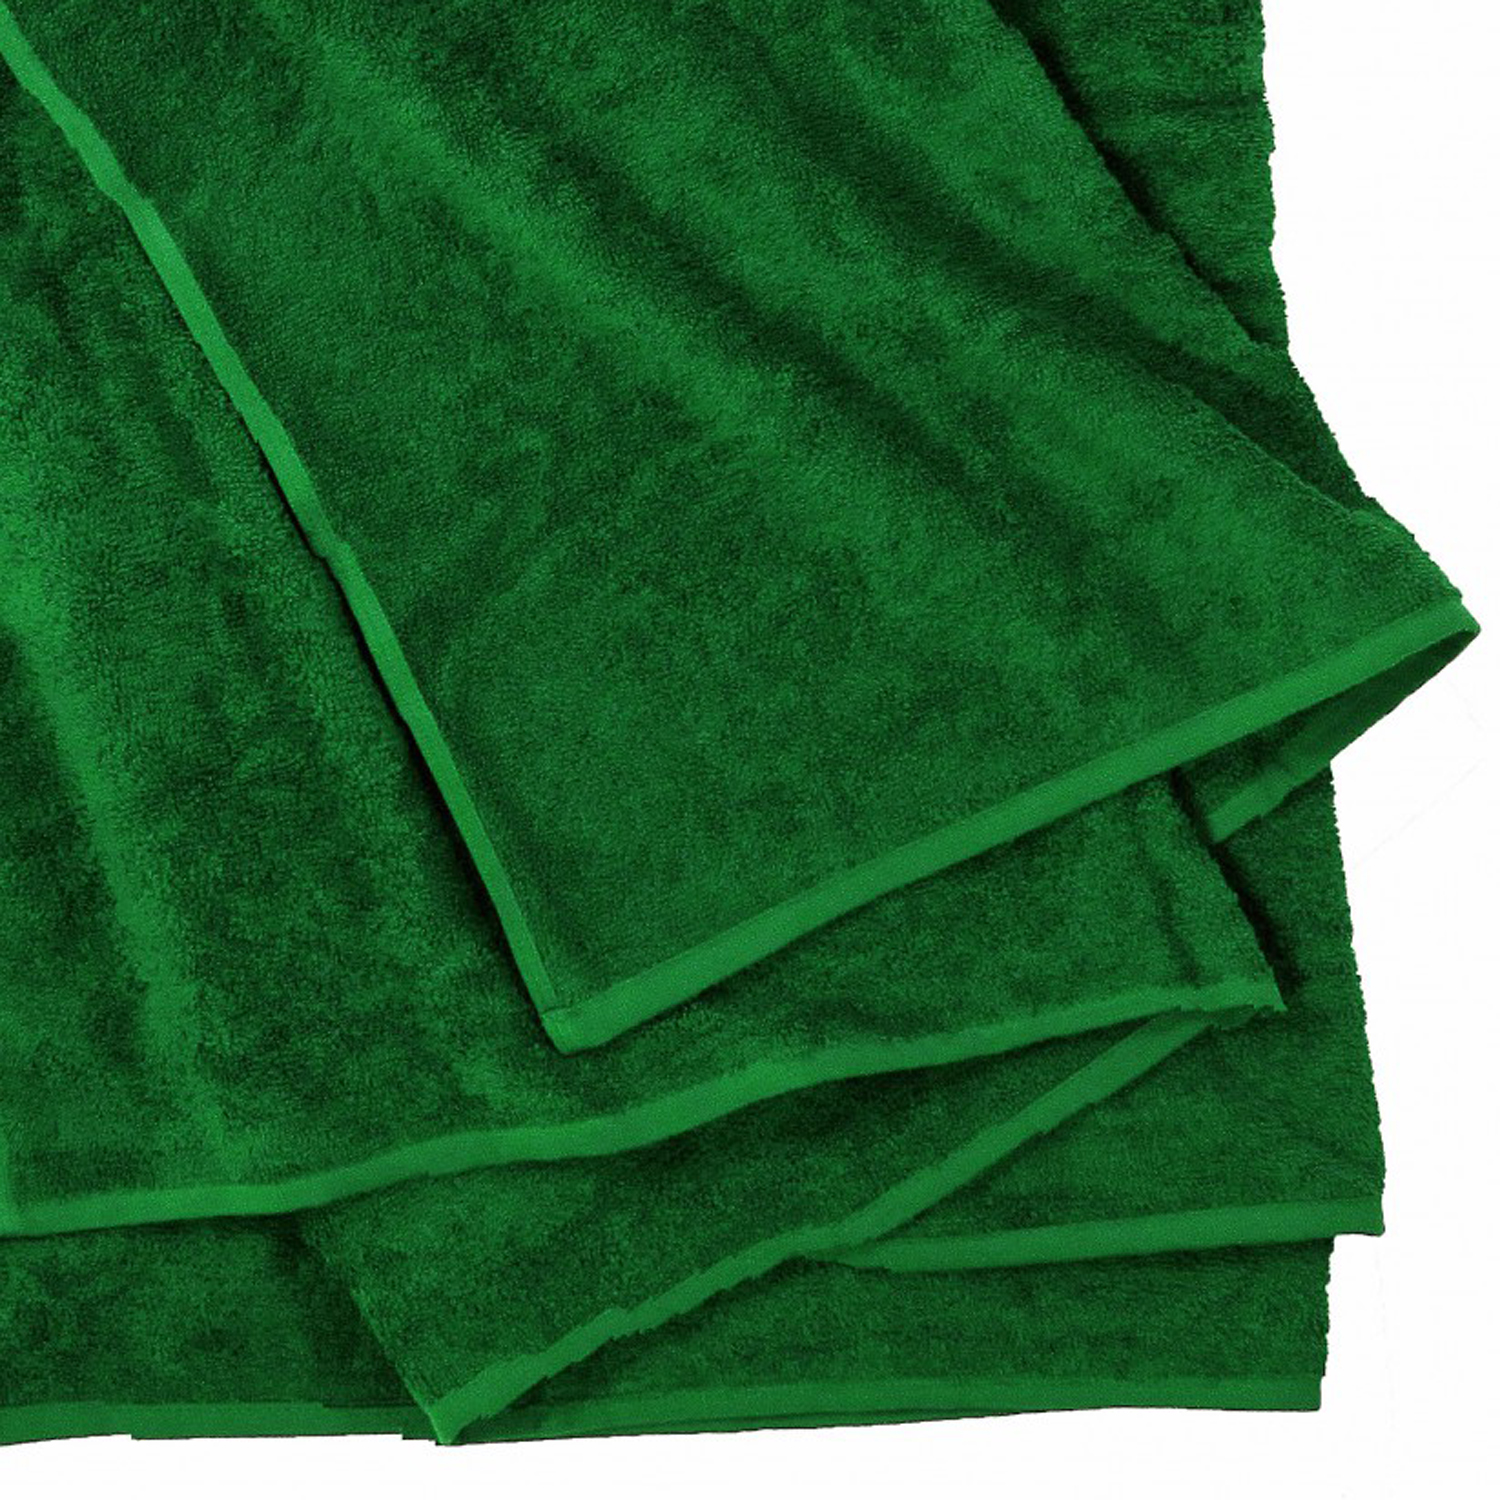 Detail Image to Bath towel in dark green by Kapart in large sizes 100x220 cm and 155x220 cm